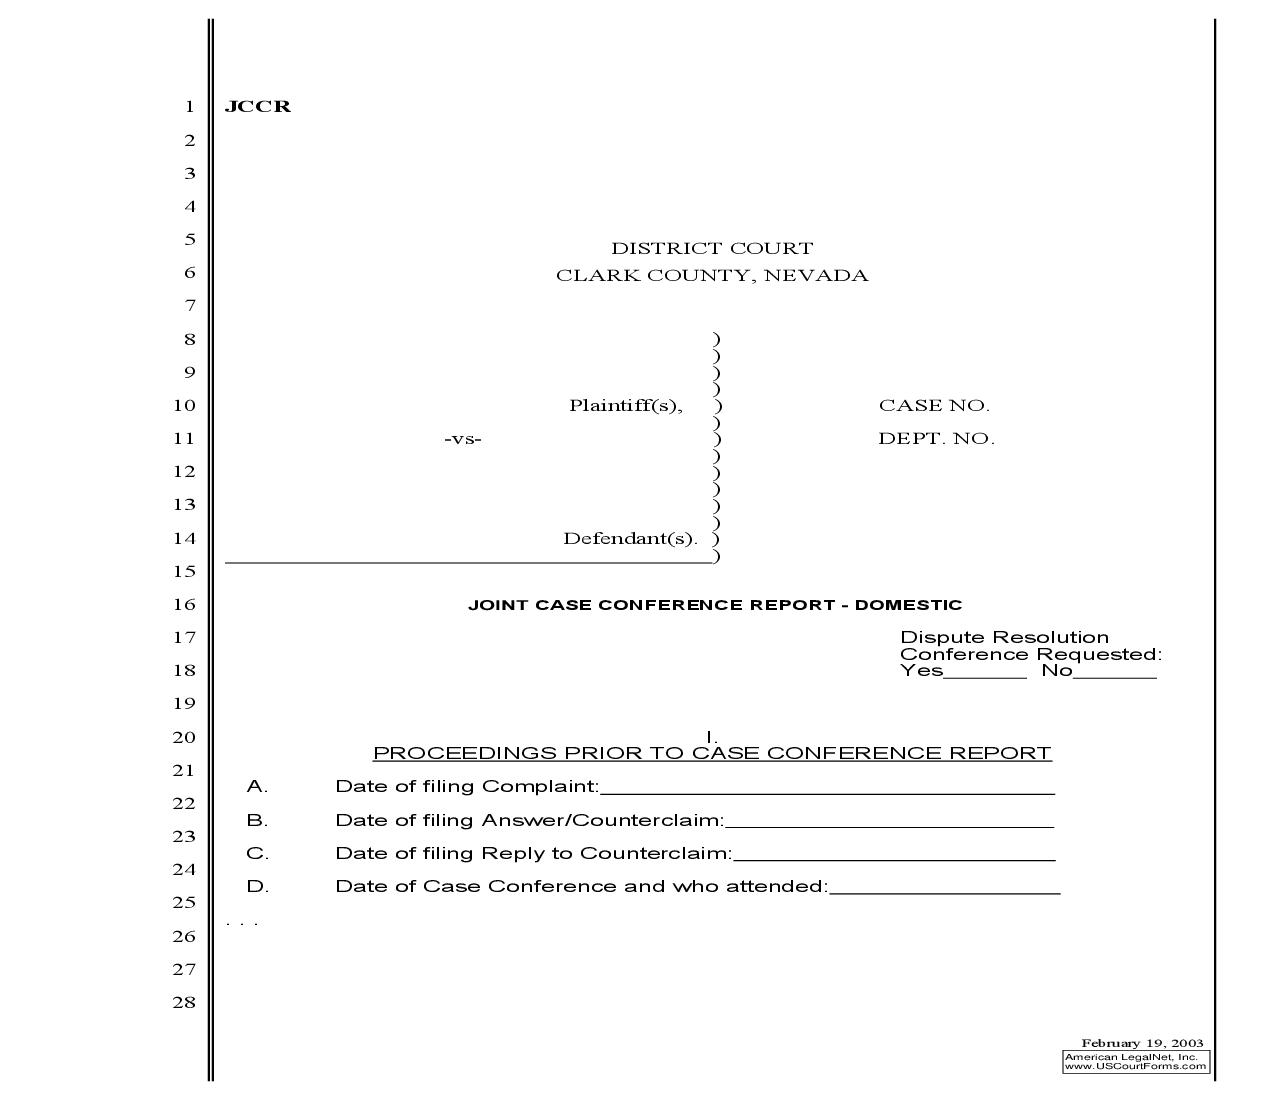 Joint Case Conference Report Domestic {JCCR}   Pdf Fpdf Doc Docx   Nevada